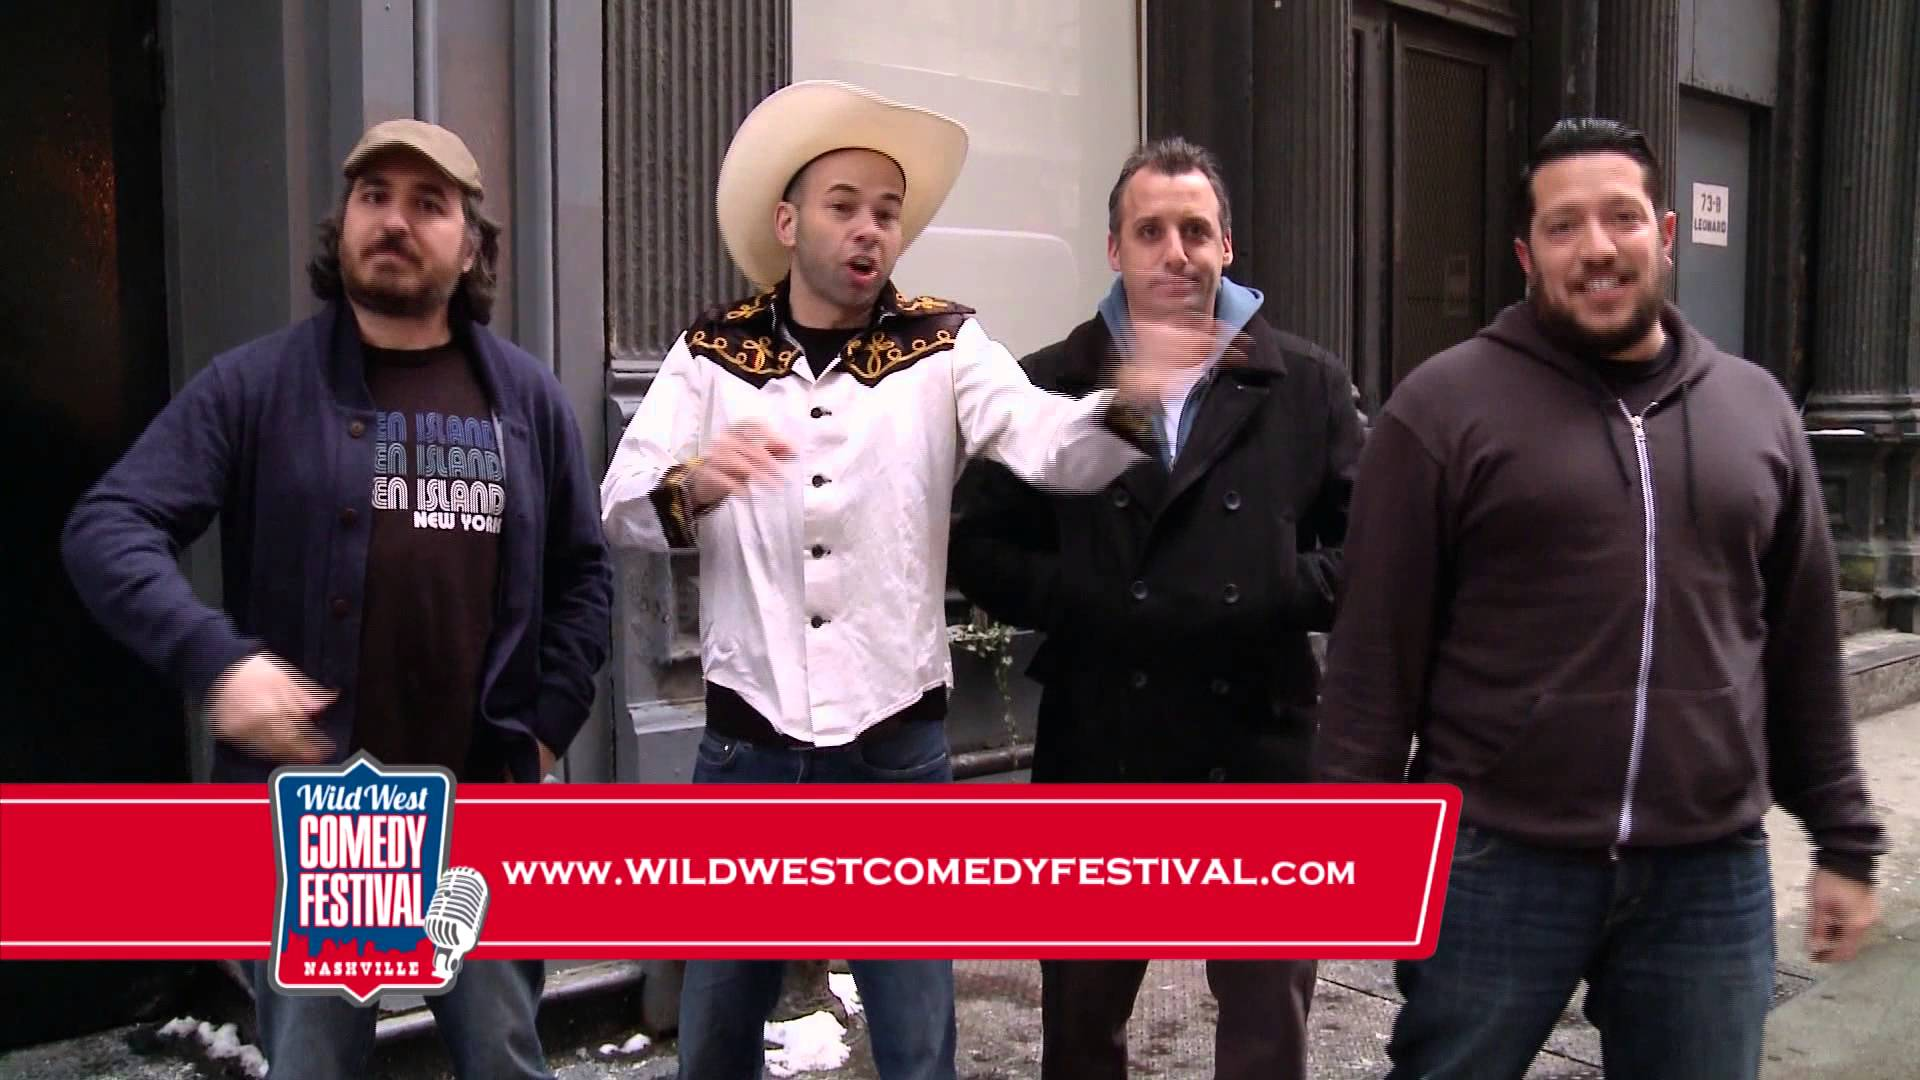 Second impractical jokers show added to wild west comedy festival axs second impractical jokers show added to wild west comedy festival m4hsunfo